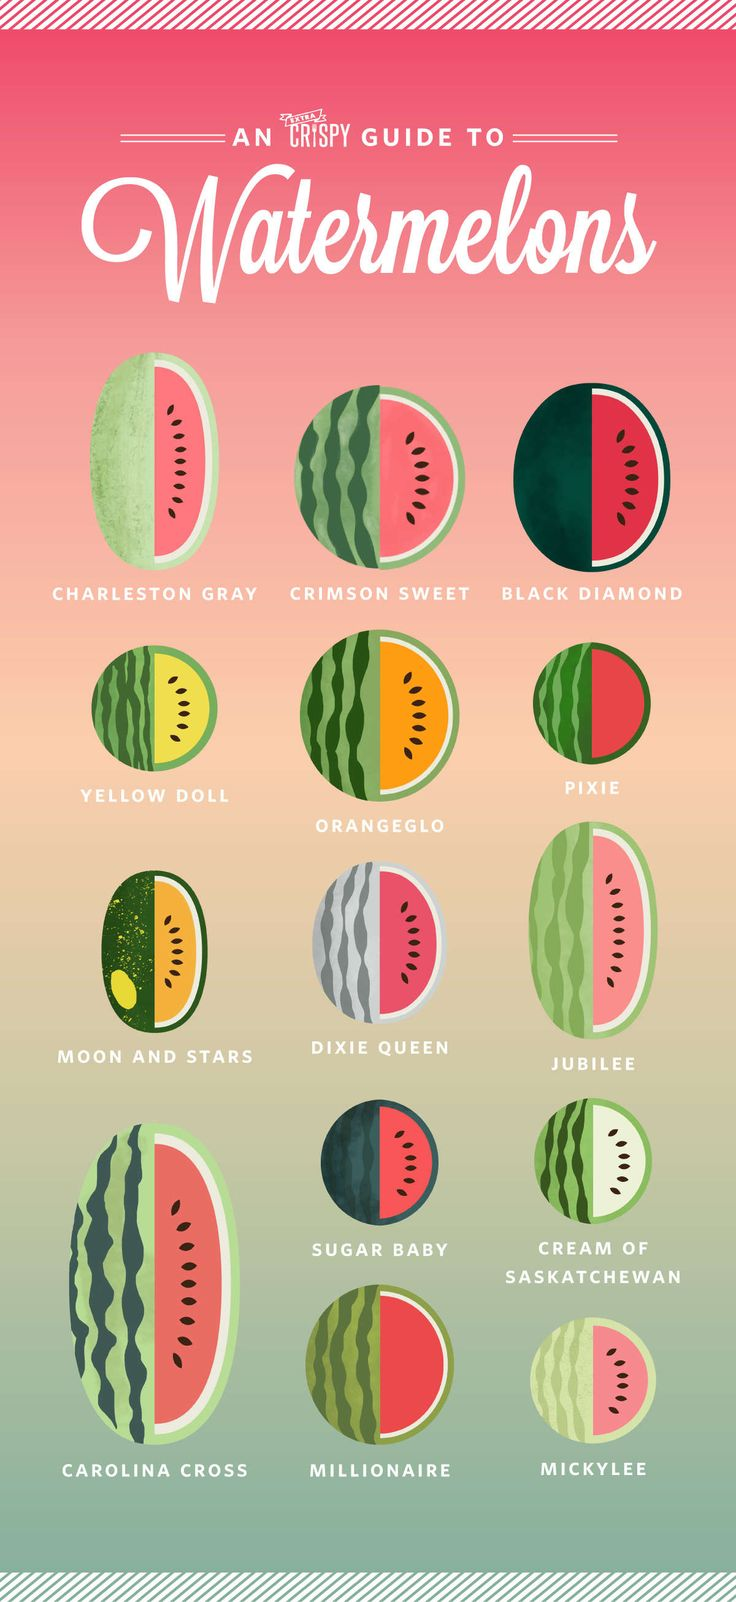 Each of these different watermelon types is slightly different in shape, size, texture, and, of course, color. And you can tell a lot about the way a watermelon tastes based on how it looks. According to the experts at the Watermelon Board, yellow and orange watermelons are generally sweeter than those with pink or red flesh. Seedless watermelons tend to have a crisper texture than those with seeds, they add.